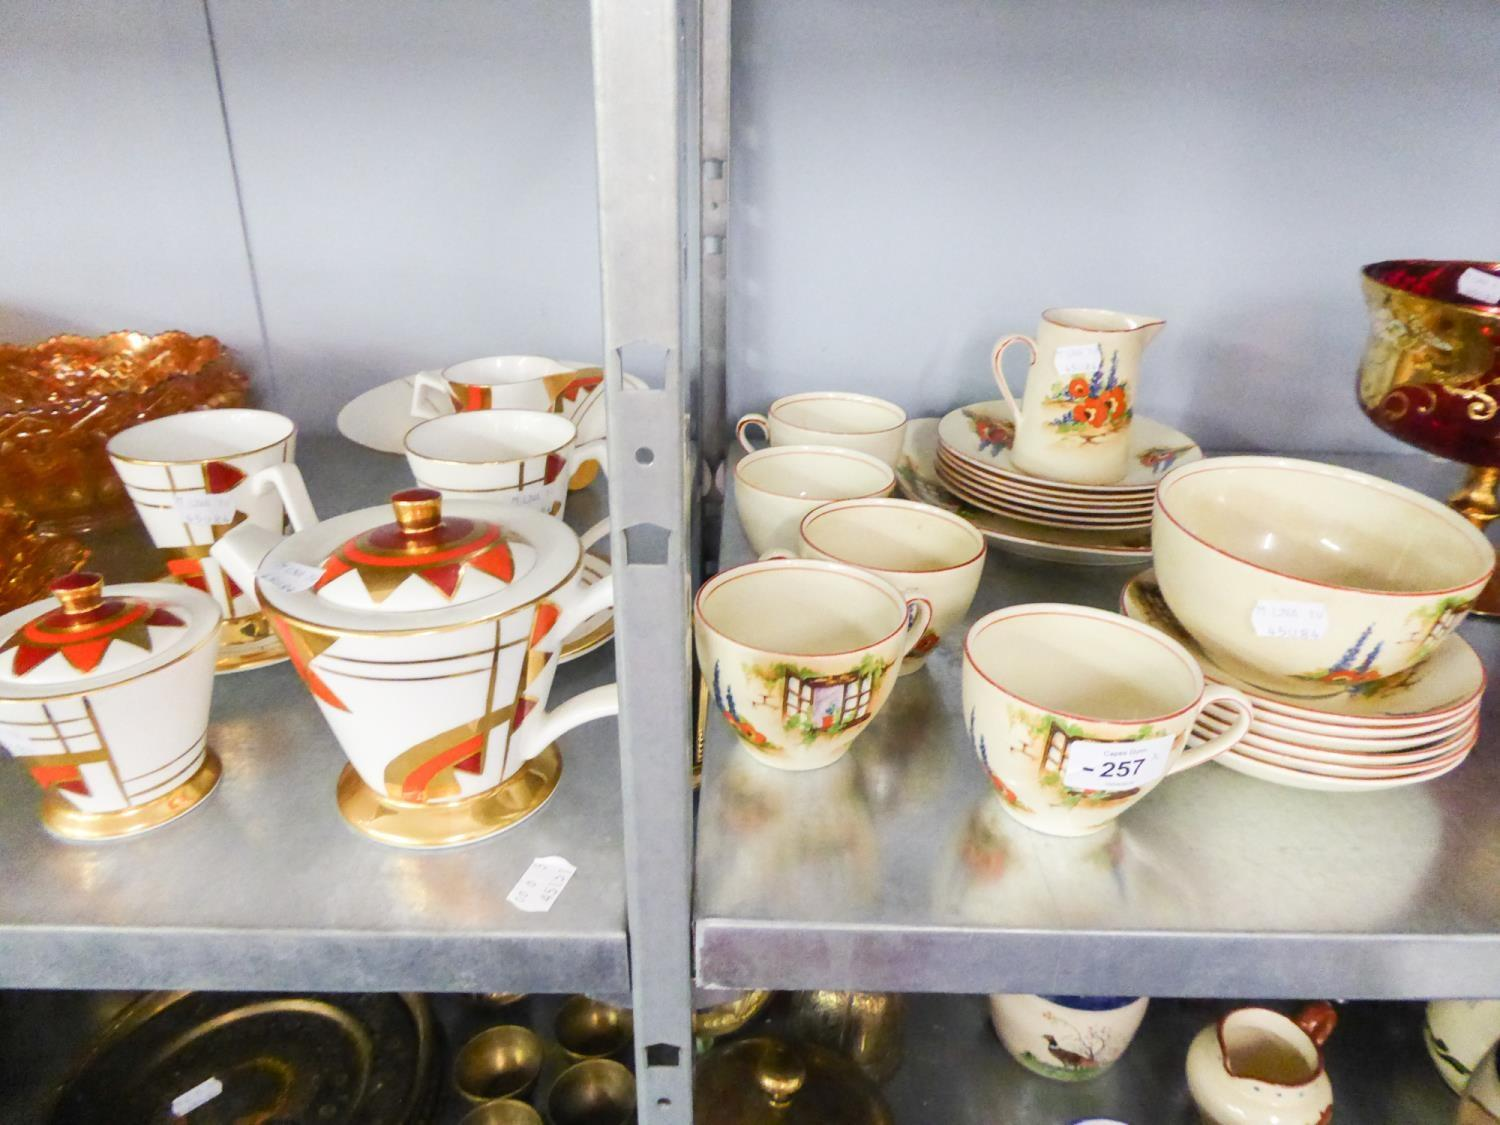 Lot 257 - BRIAN WOOD 'GOLDEN JAZZ' TEA SERVICE FOR TWO, ANOTHER TEA SERVICE FOR FIVE PERSONS WITH WINDOW AND